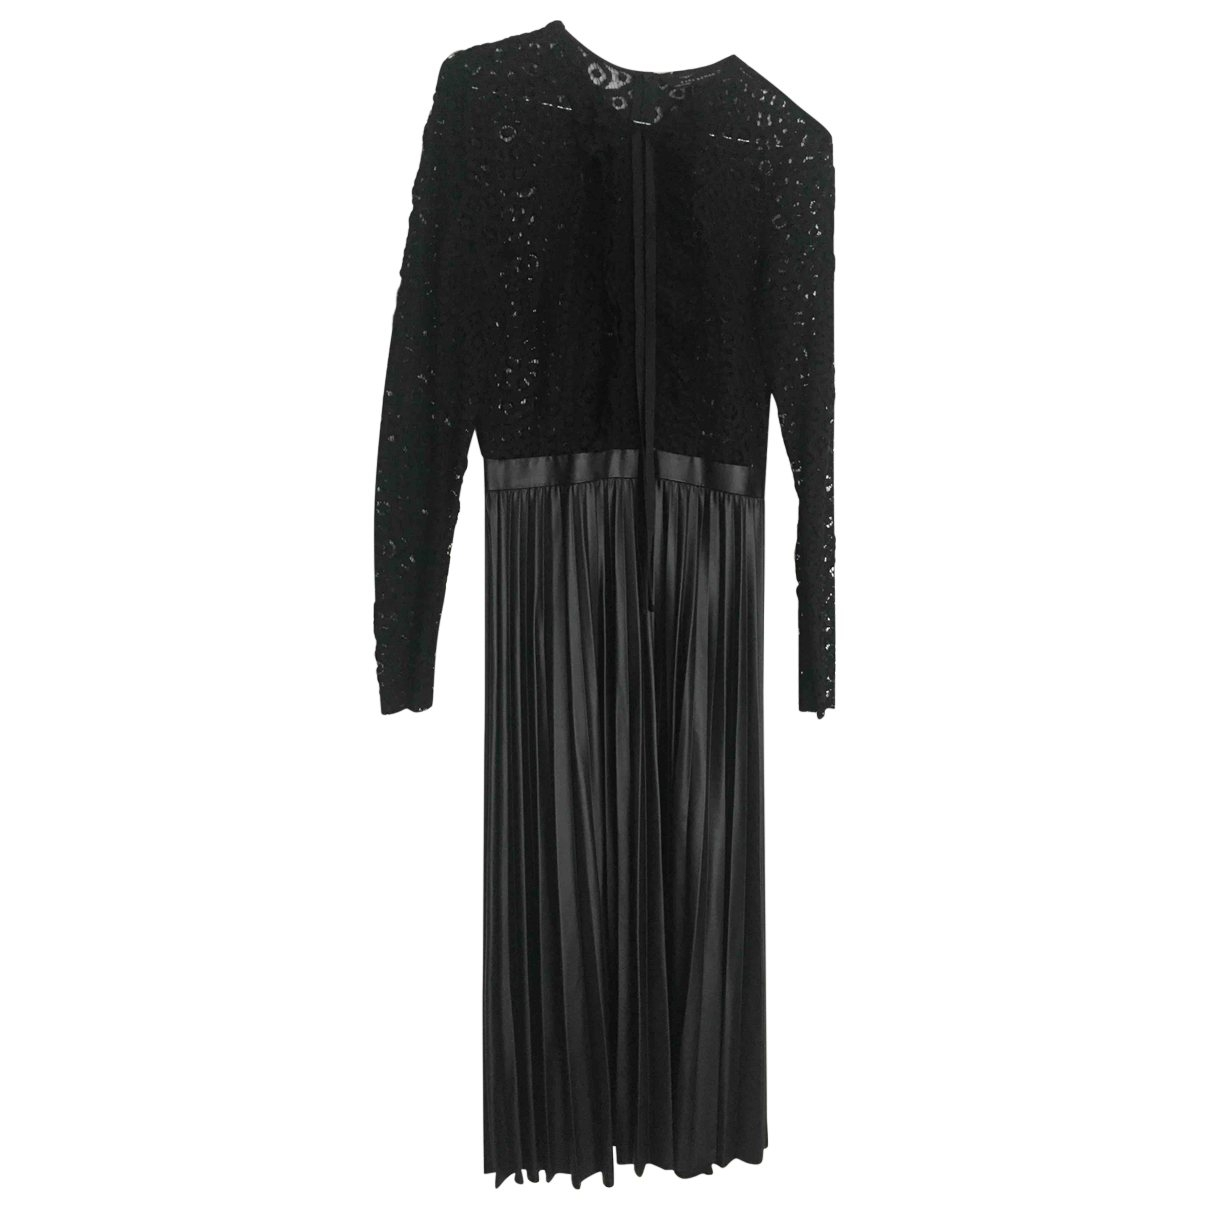 Zara \N Black Lace dress for Women XS International